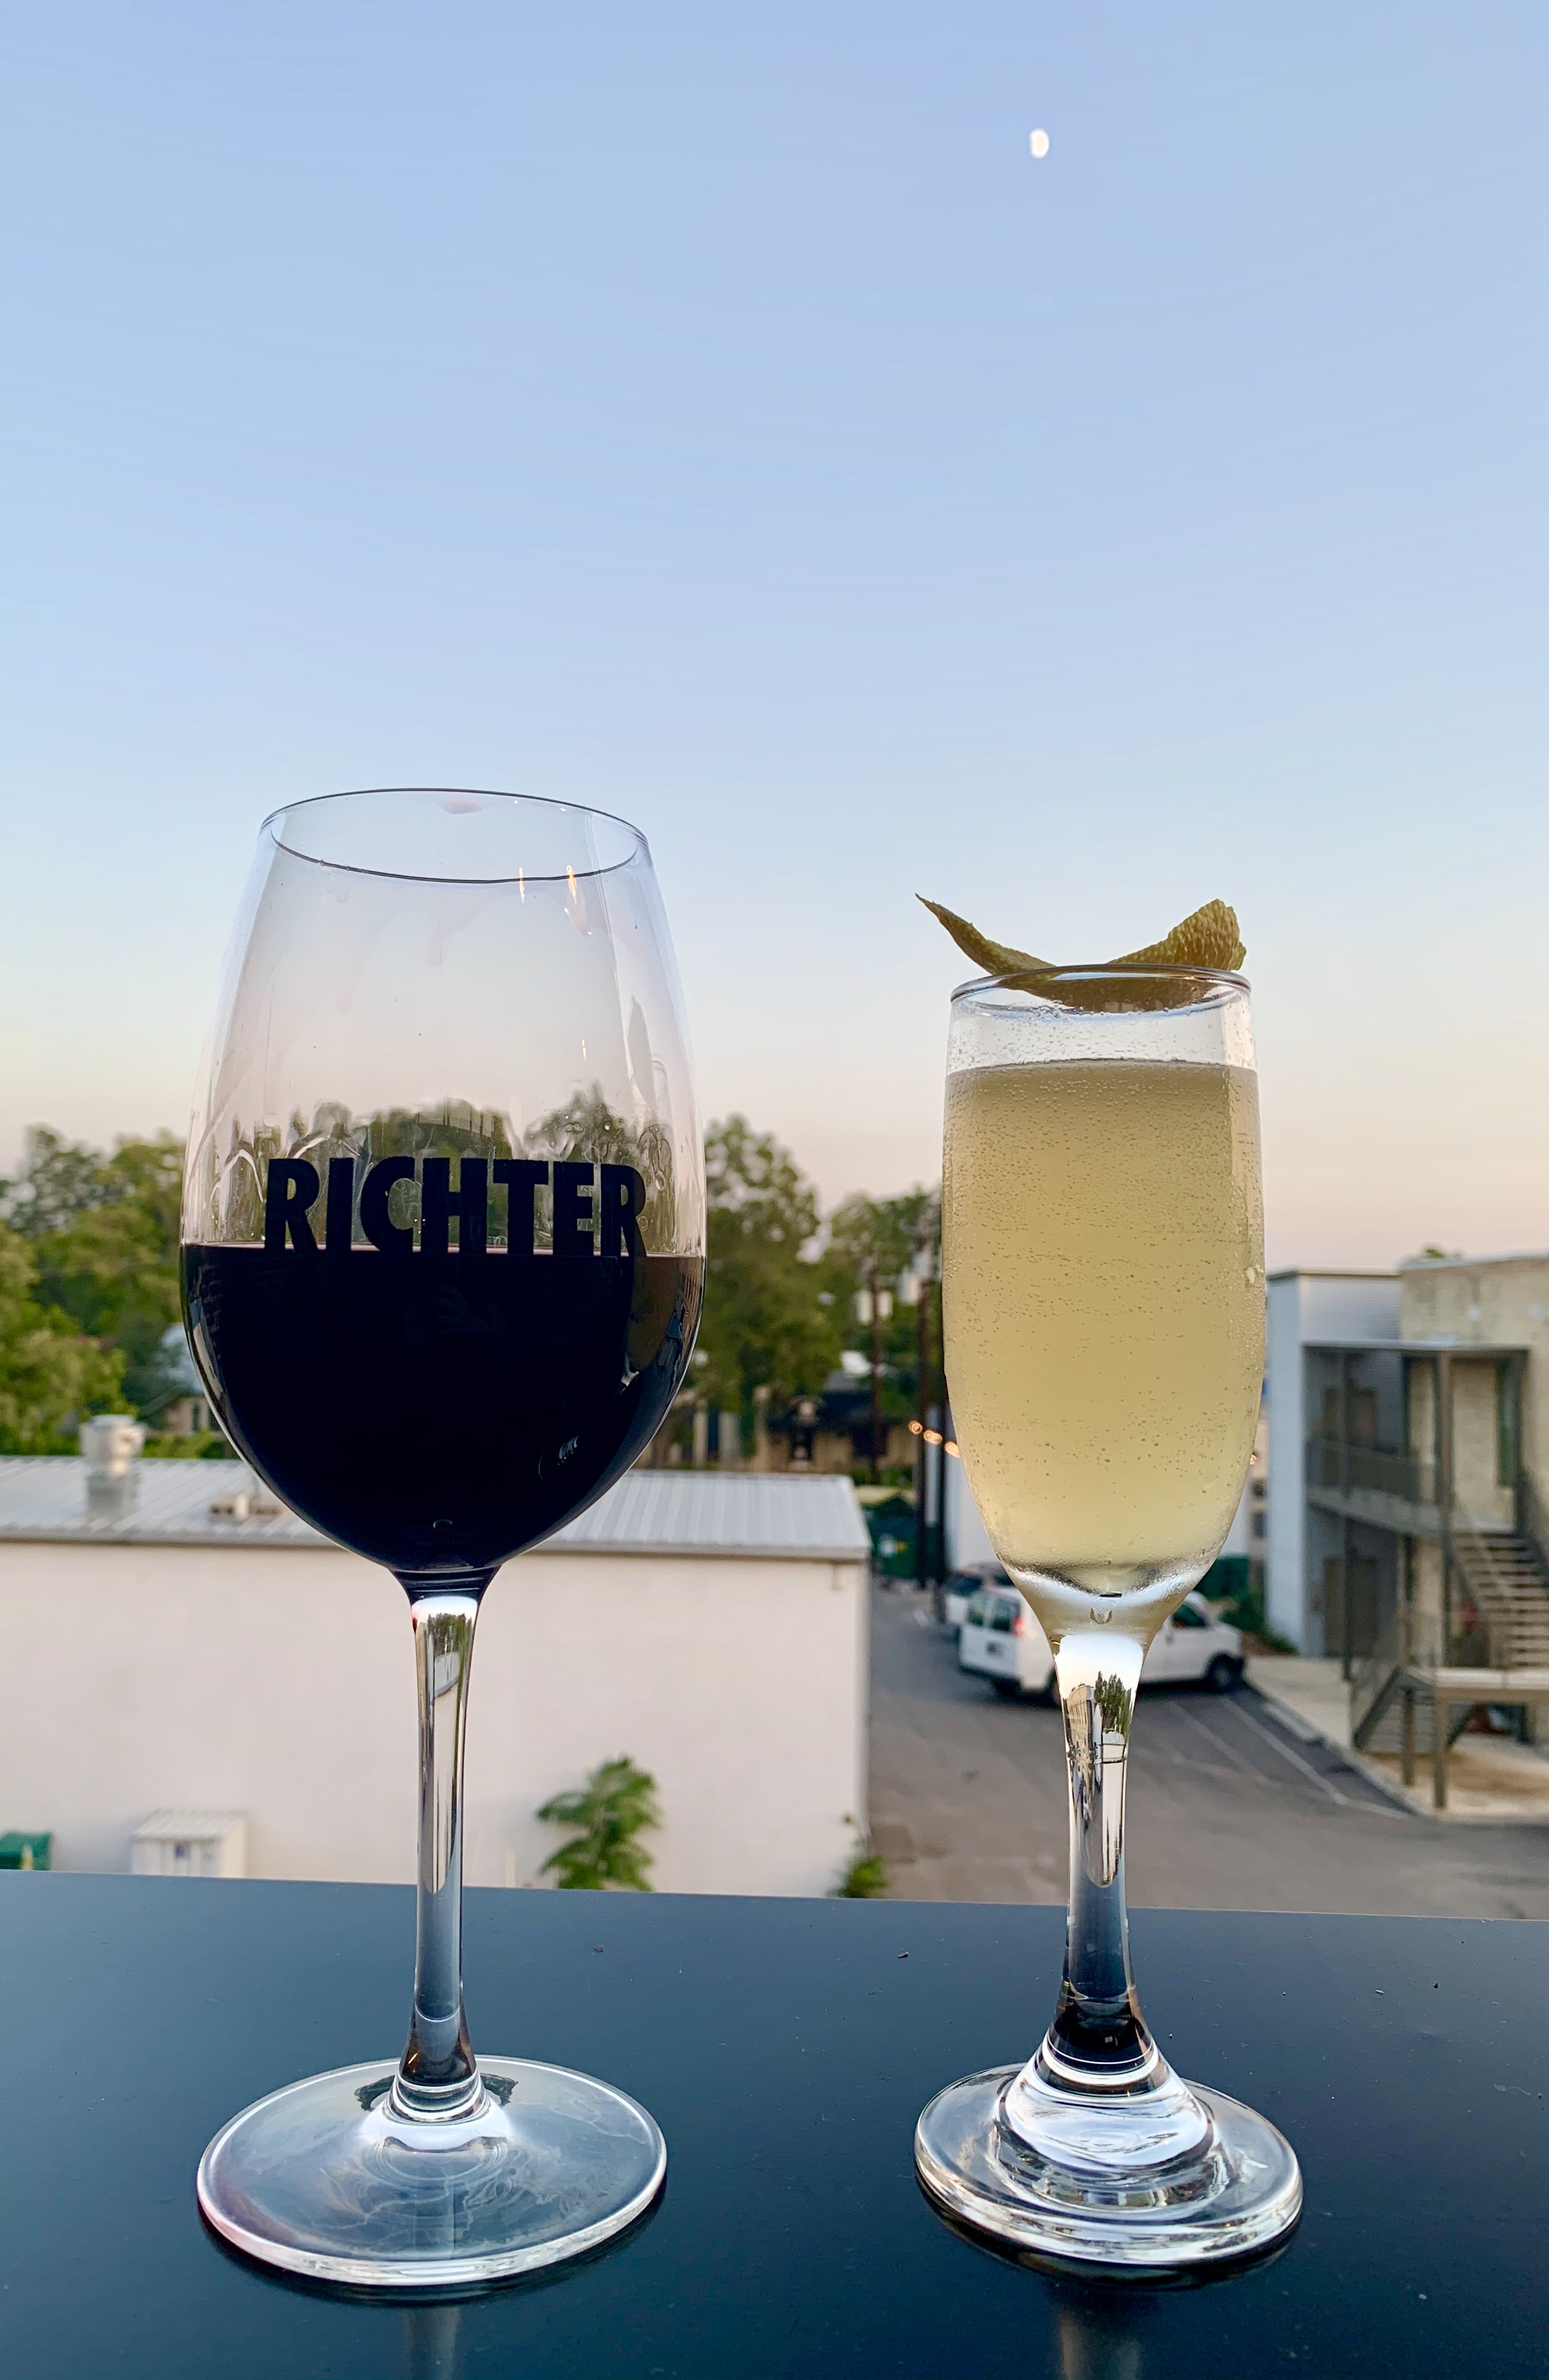 Richter Tavern Boerne wine